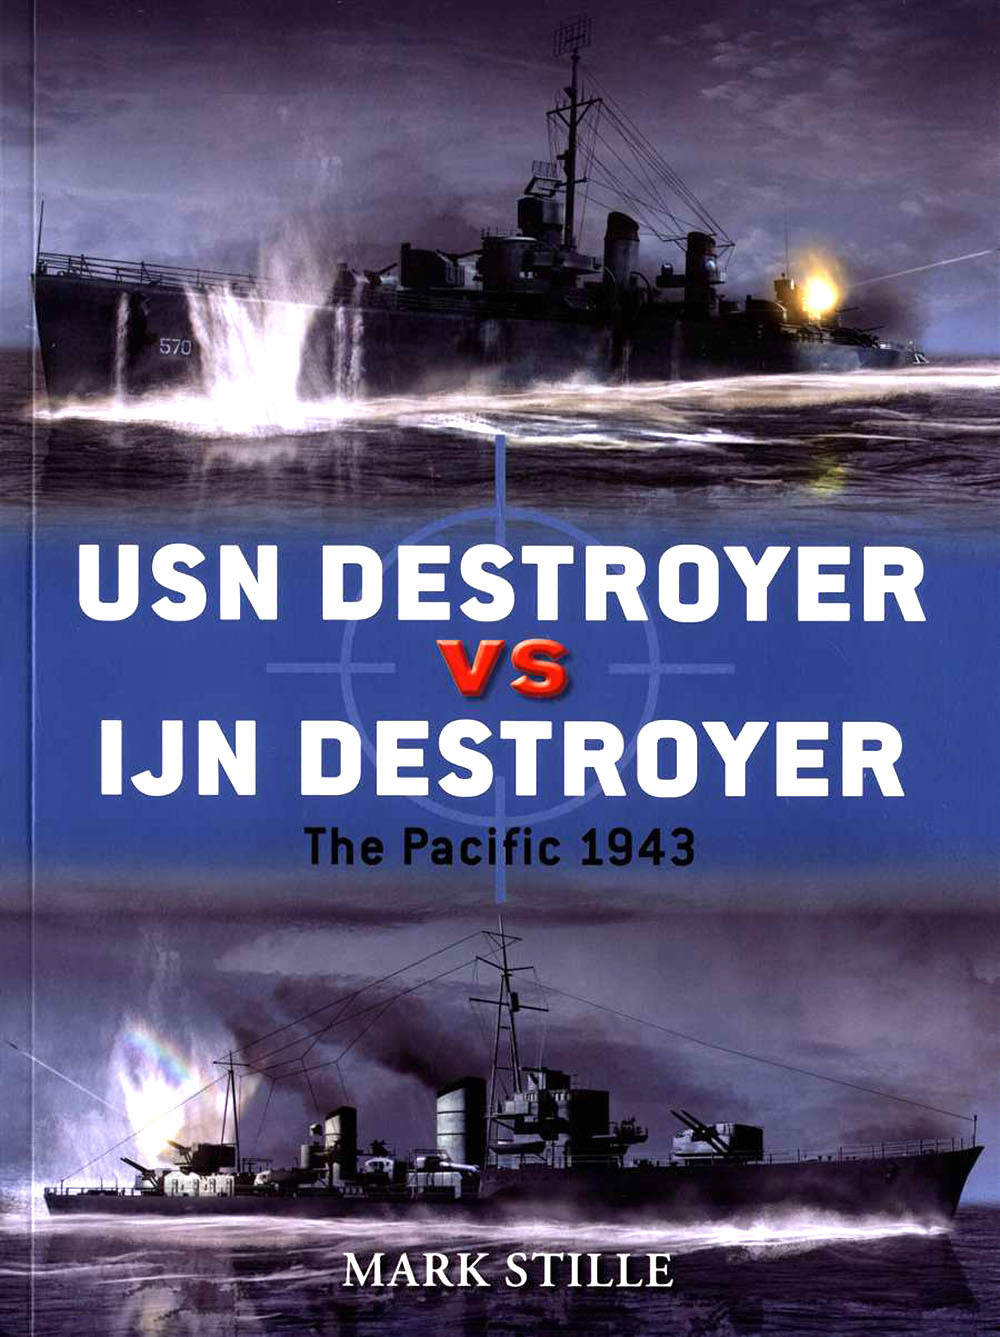 "BOOK REVIEW – USN Destroyer VS IJN Destroyer: The Pacific 1943 By Mark E. Stille, with contributors, Osprey Publishing, Long Island City, NY (2012) Reviewed by Michael F. Solecki The naval frigates known as ""destroyers"" first came into their own in the Pacific Theater of World War II. These ships evolved out of the 1890s from the need to counter smaller torpedo boats used to attack capital ships in fleet-formation; getting their name from the shortening of the original moniker of ""Torpedo Boat Destroyer."" They are known as the ""greyhounds of the sea"" for their sleek hulls, tasking flexibility, speed, maneuverability and stamina; oh, and of course their ""haze grey"" color. (read the full review)"